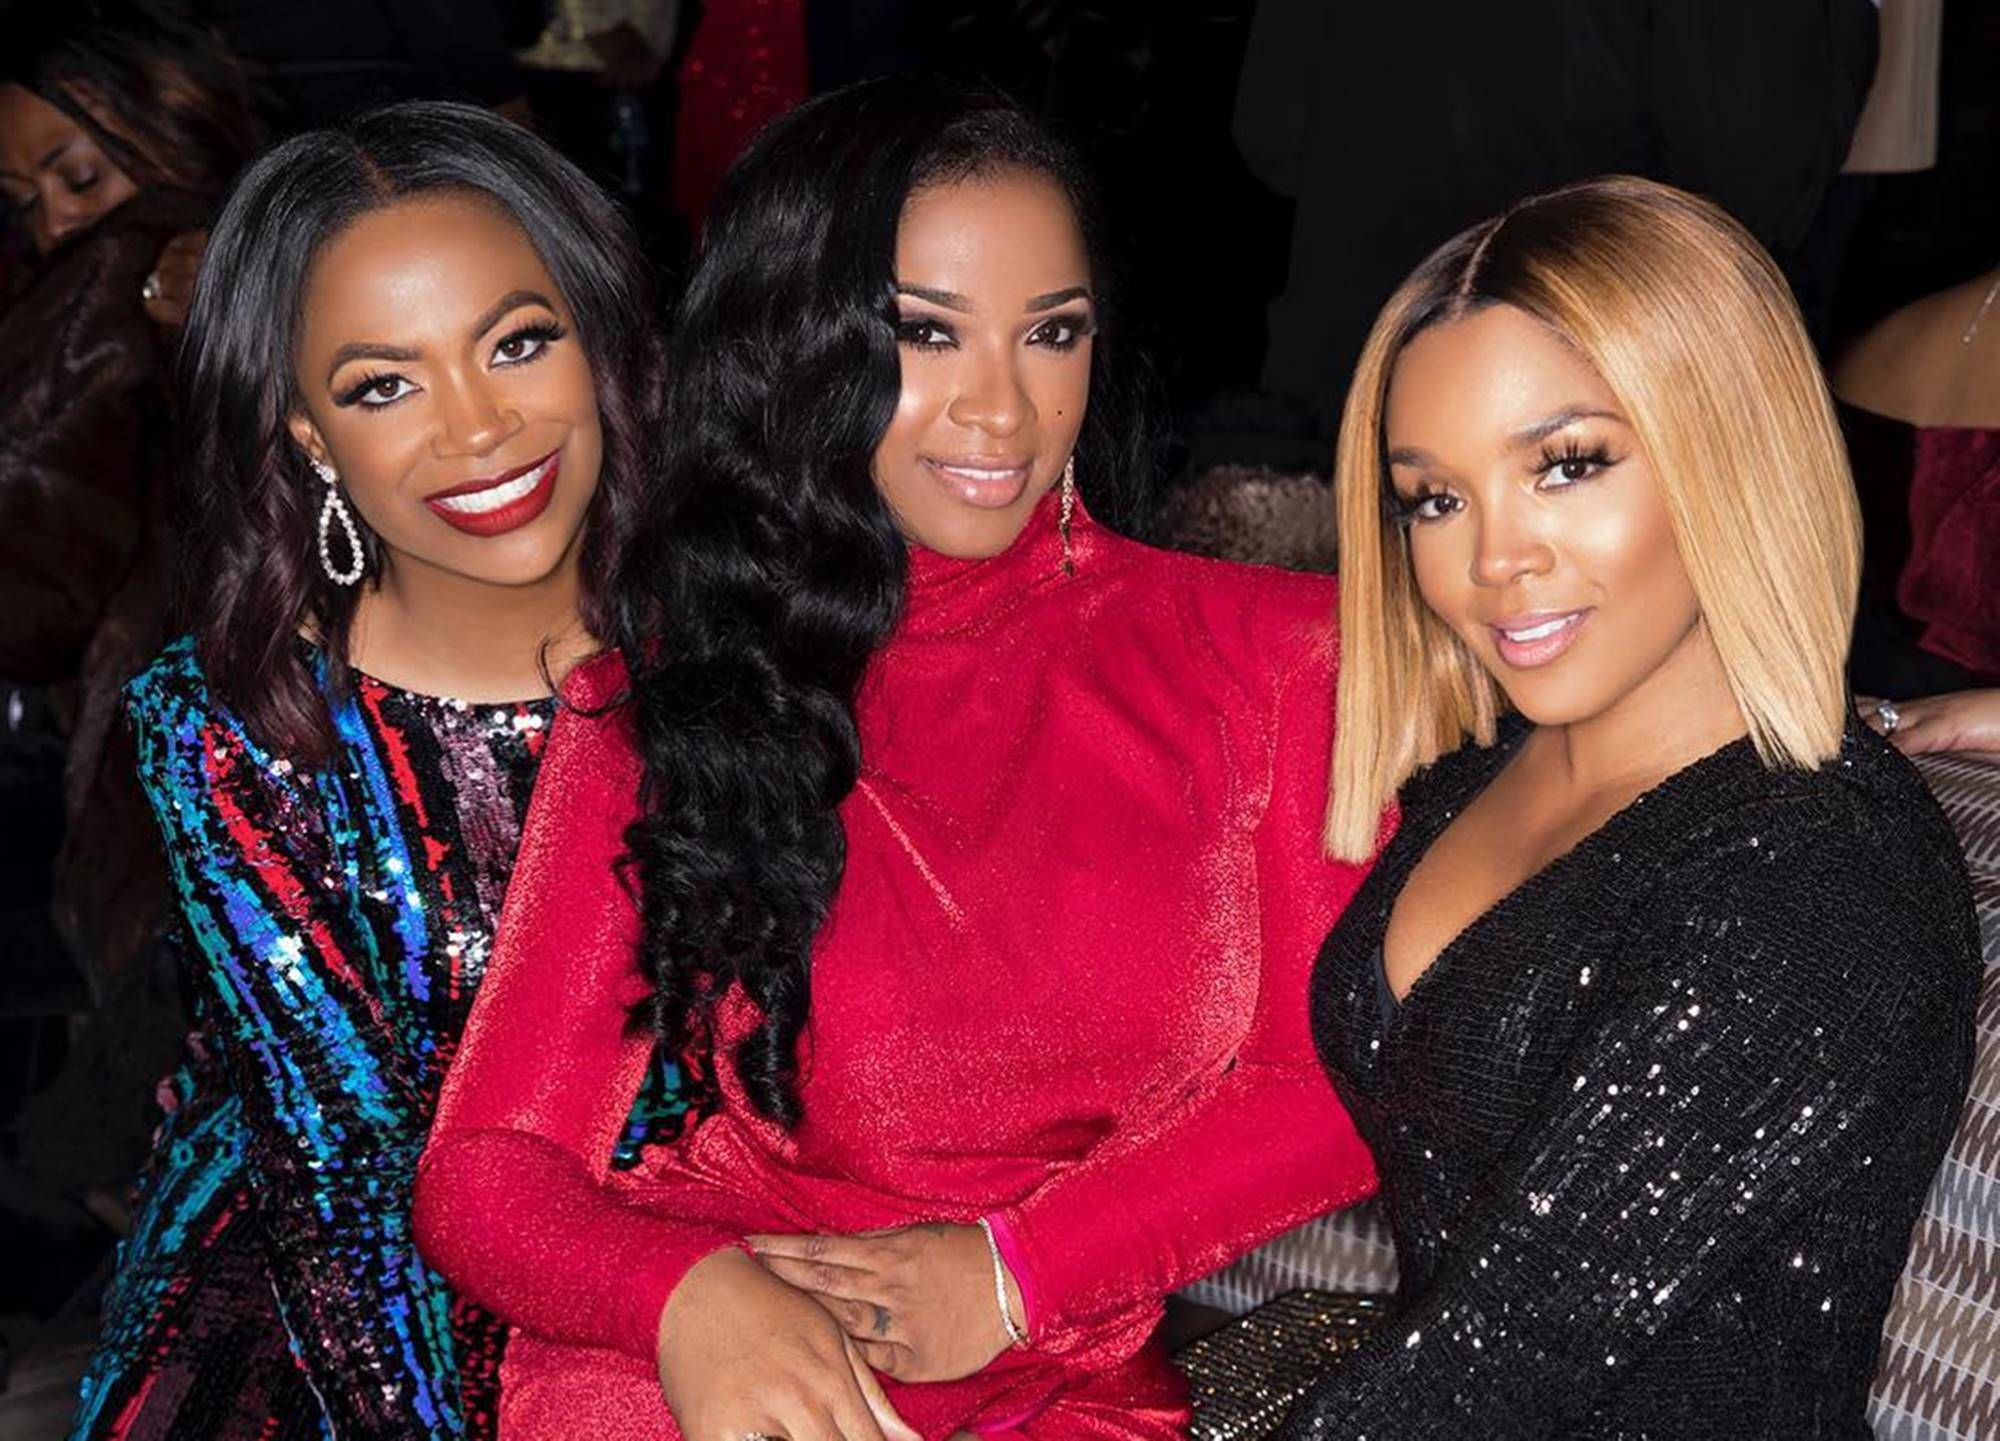 tiny-harris-and-kandi-burruss-share-photos-from-kirk-frosts-anniversary-see-the-whole-gang-having-the-best-time